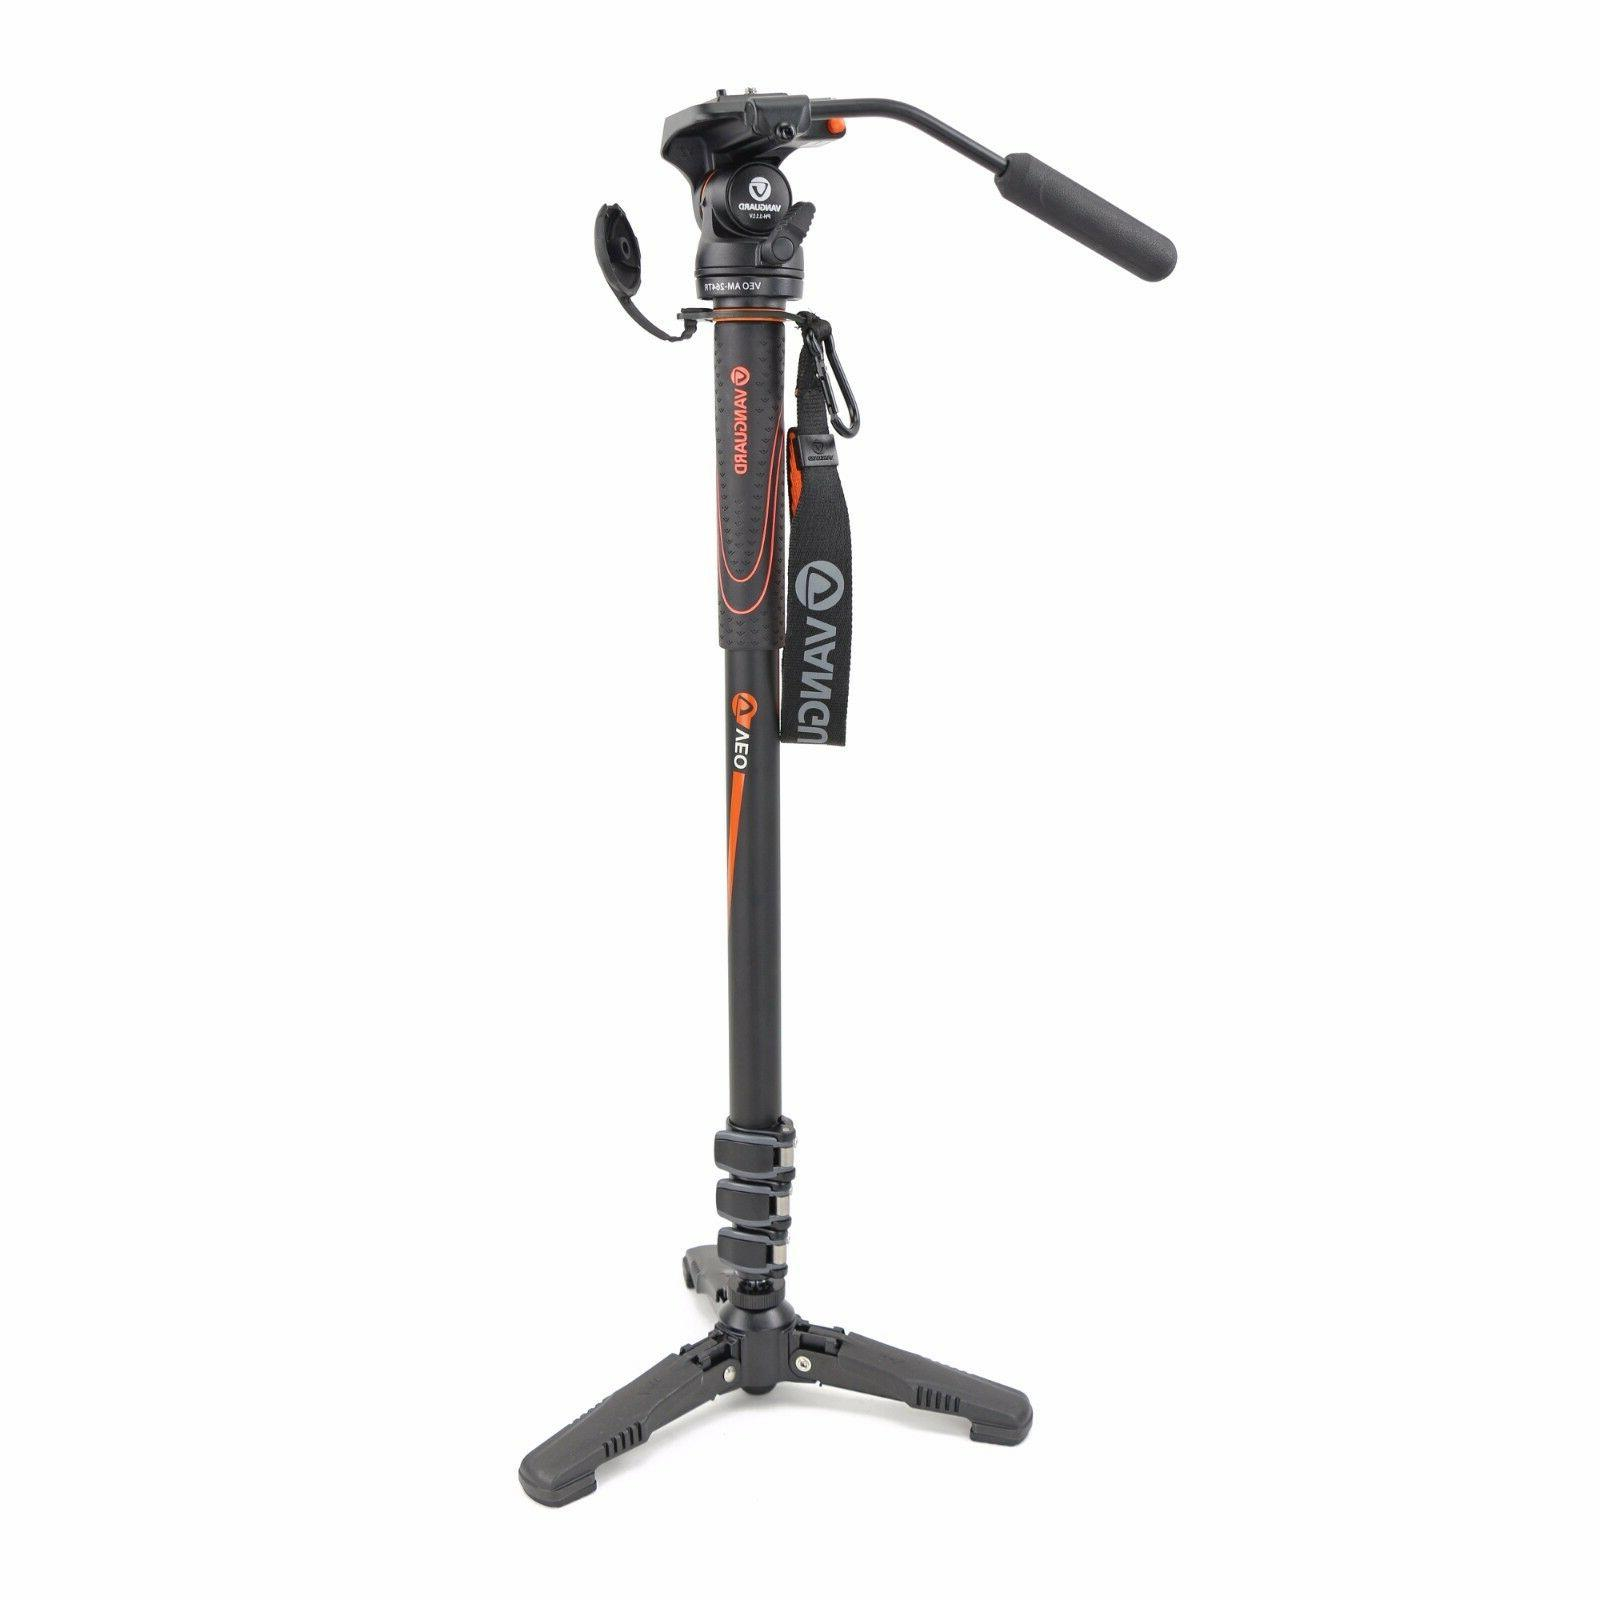 Vanguard VEO AM-264TV Aluminum 4 Section Monopod with 2-way